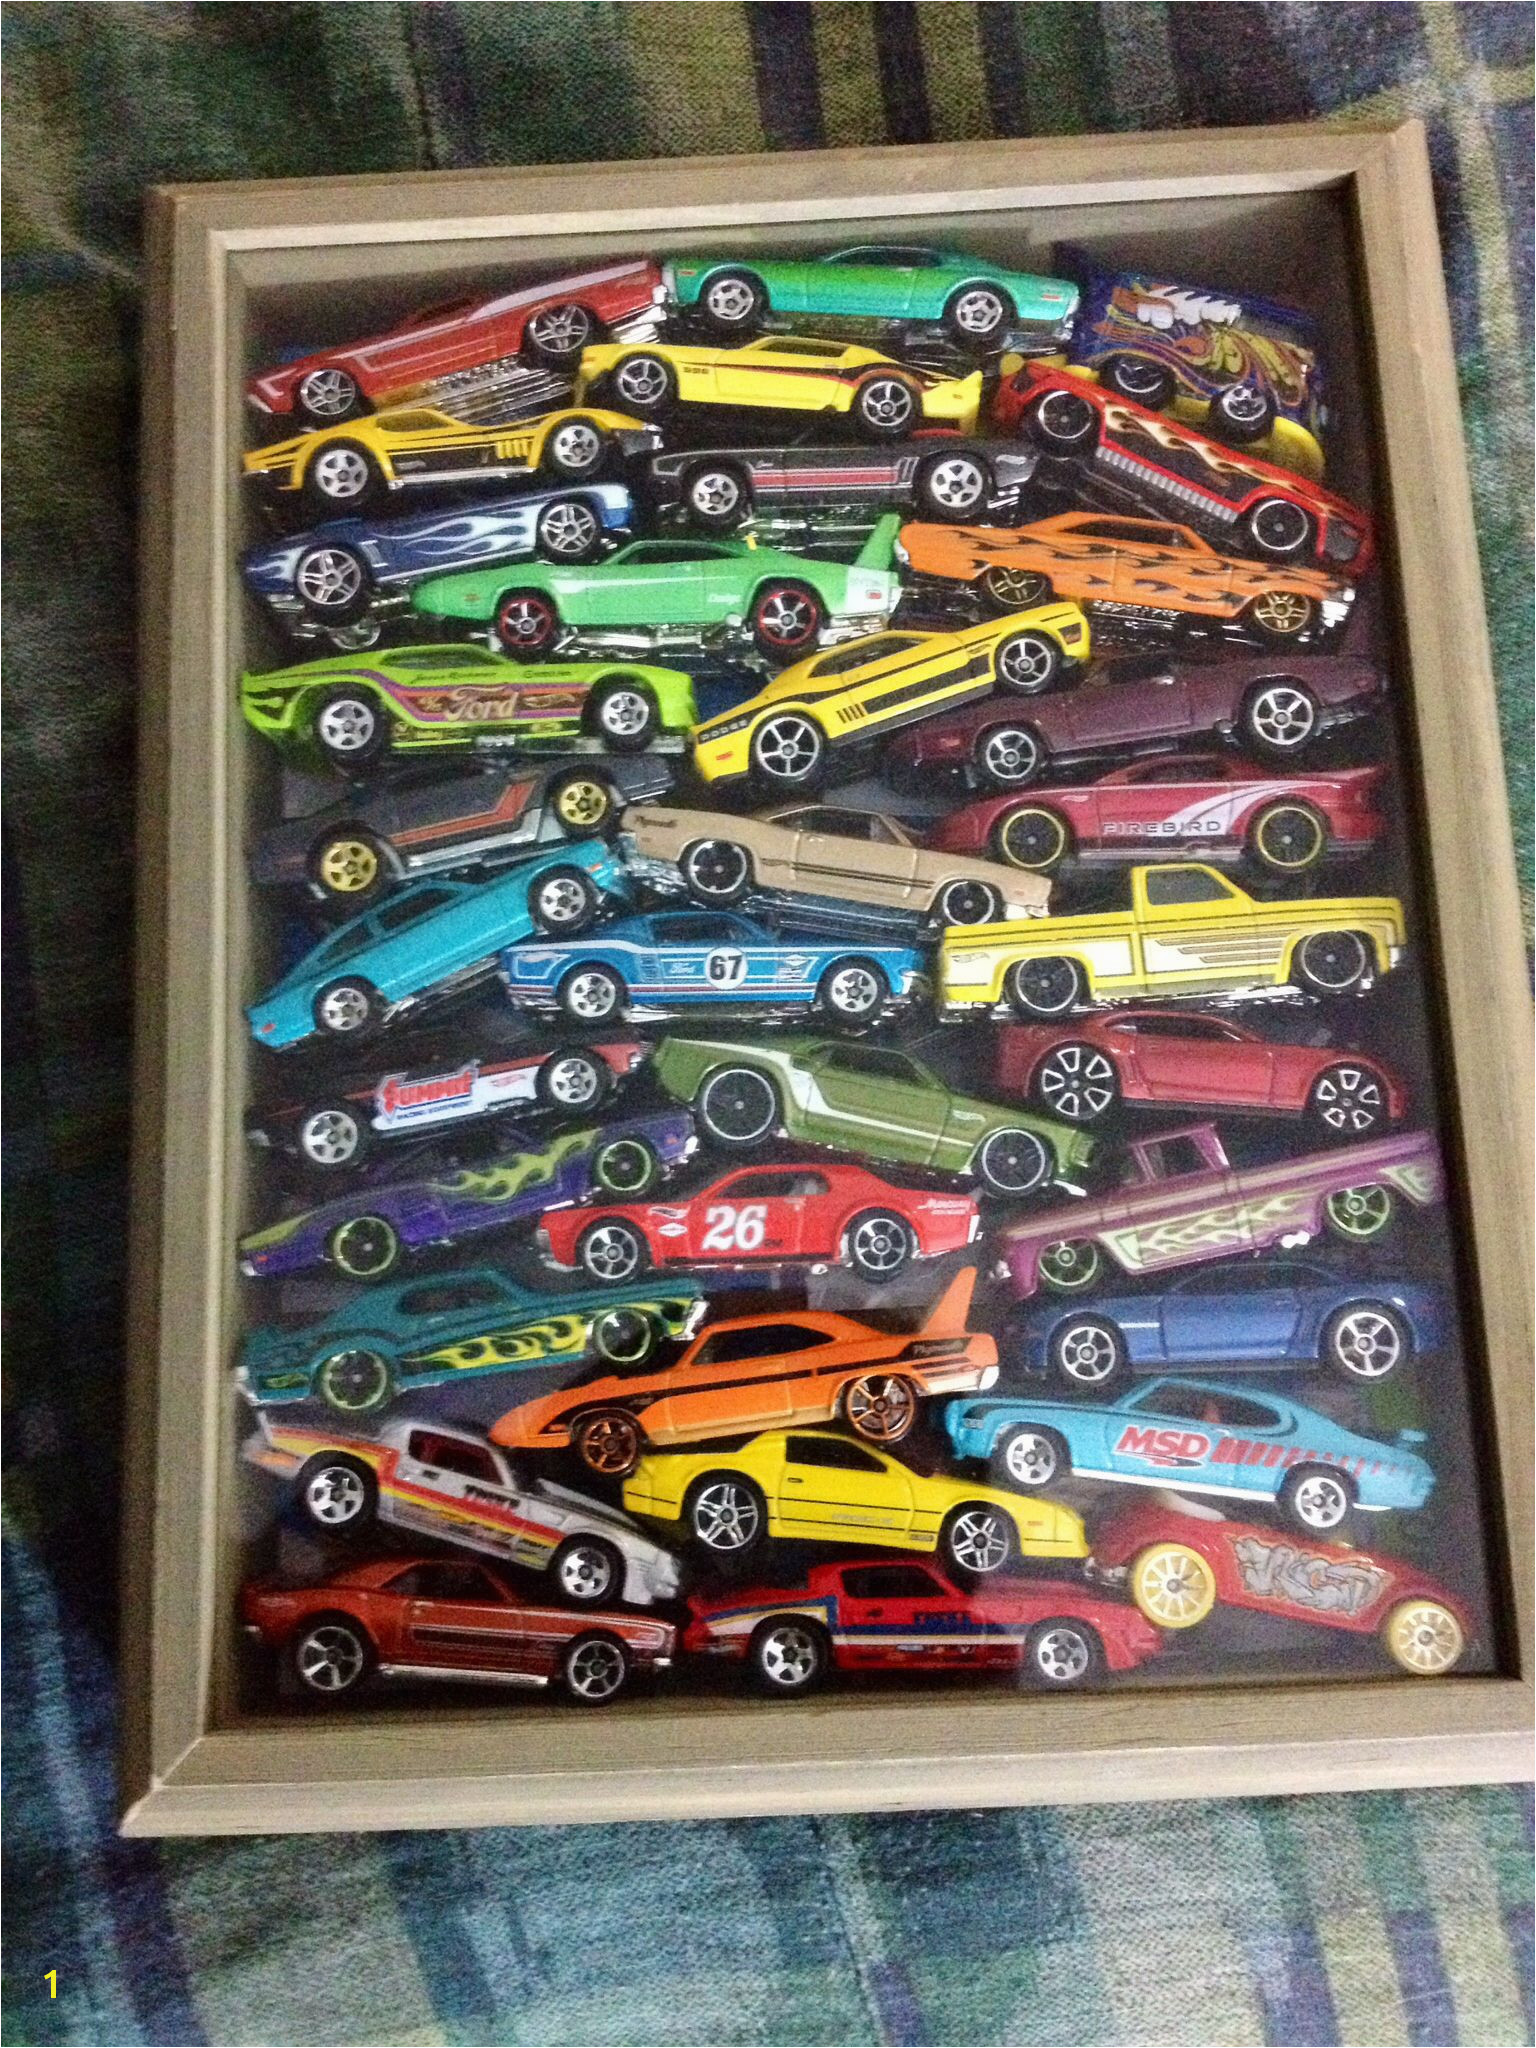 8x10 shadow box loaded with Hot Wheels good way to store and display those cars that got unpackaged to play with hotwheels